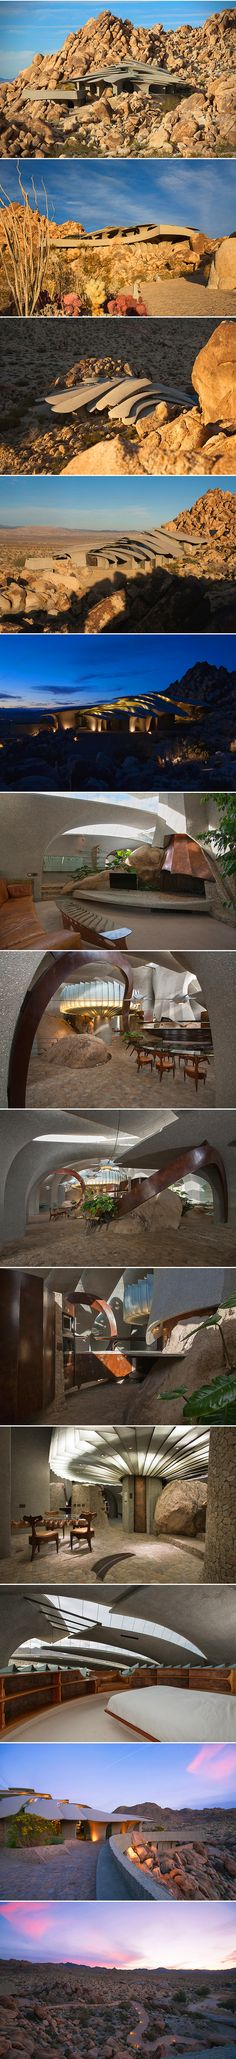 Had Imperial stormtroopers decided to makeover Uncle Owen's Tatooine home, instead of evicting him and his old lady in the harshest way possible, Luke Skywalker might have still been chilling in a home like this, the Desert House by architect Kendrick Bangs Kellogg. Just a stone's throw from Joshua Tree National Park, the Desert House stuns with its array of cast-concrete slabs that cover the home in a way that's both ancient and futuristic all at once.